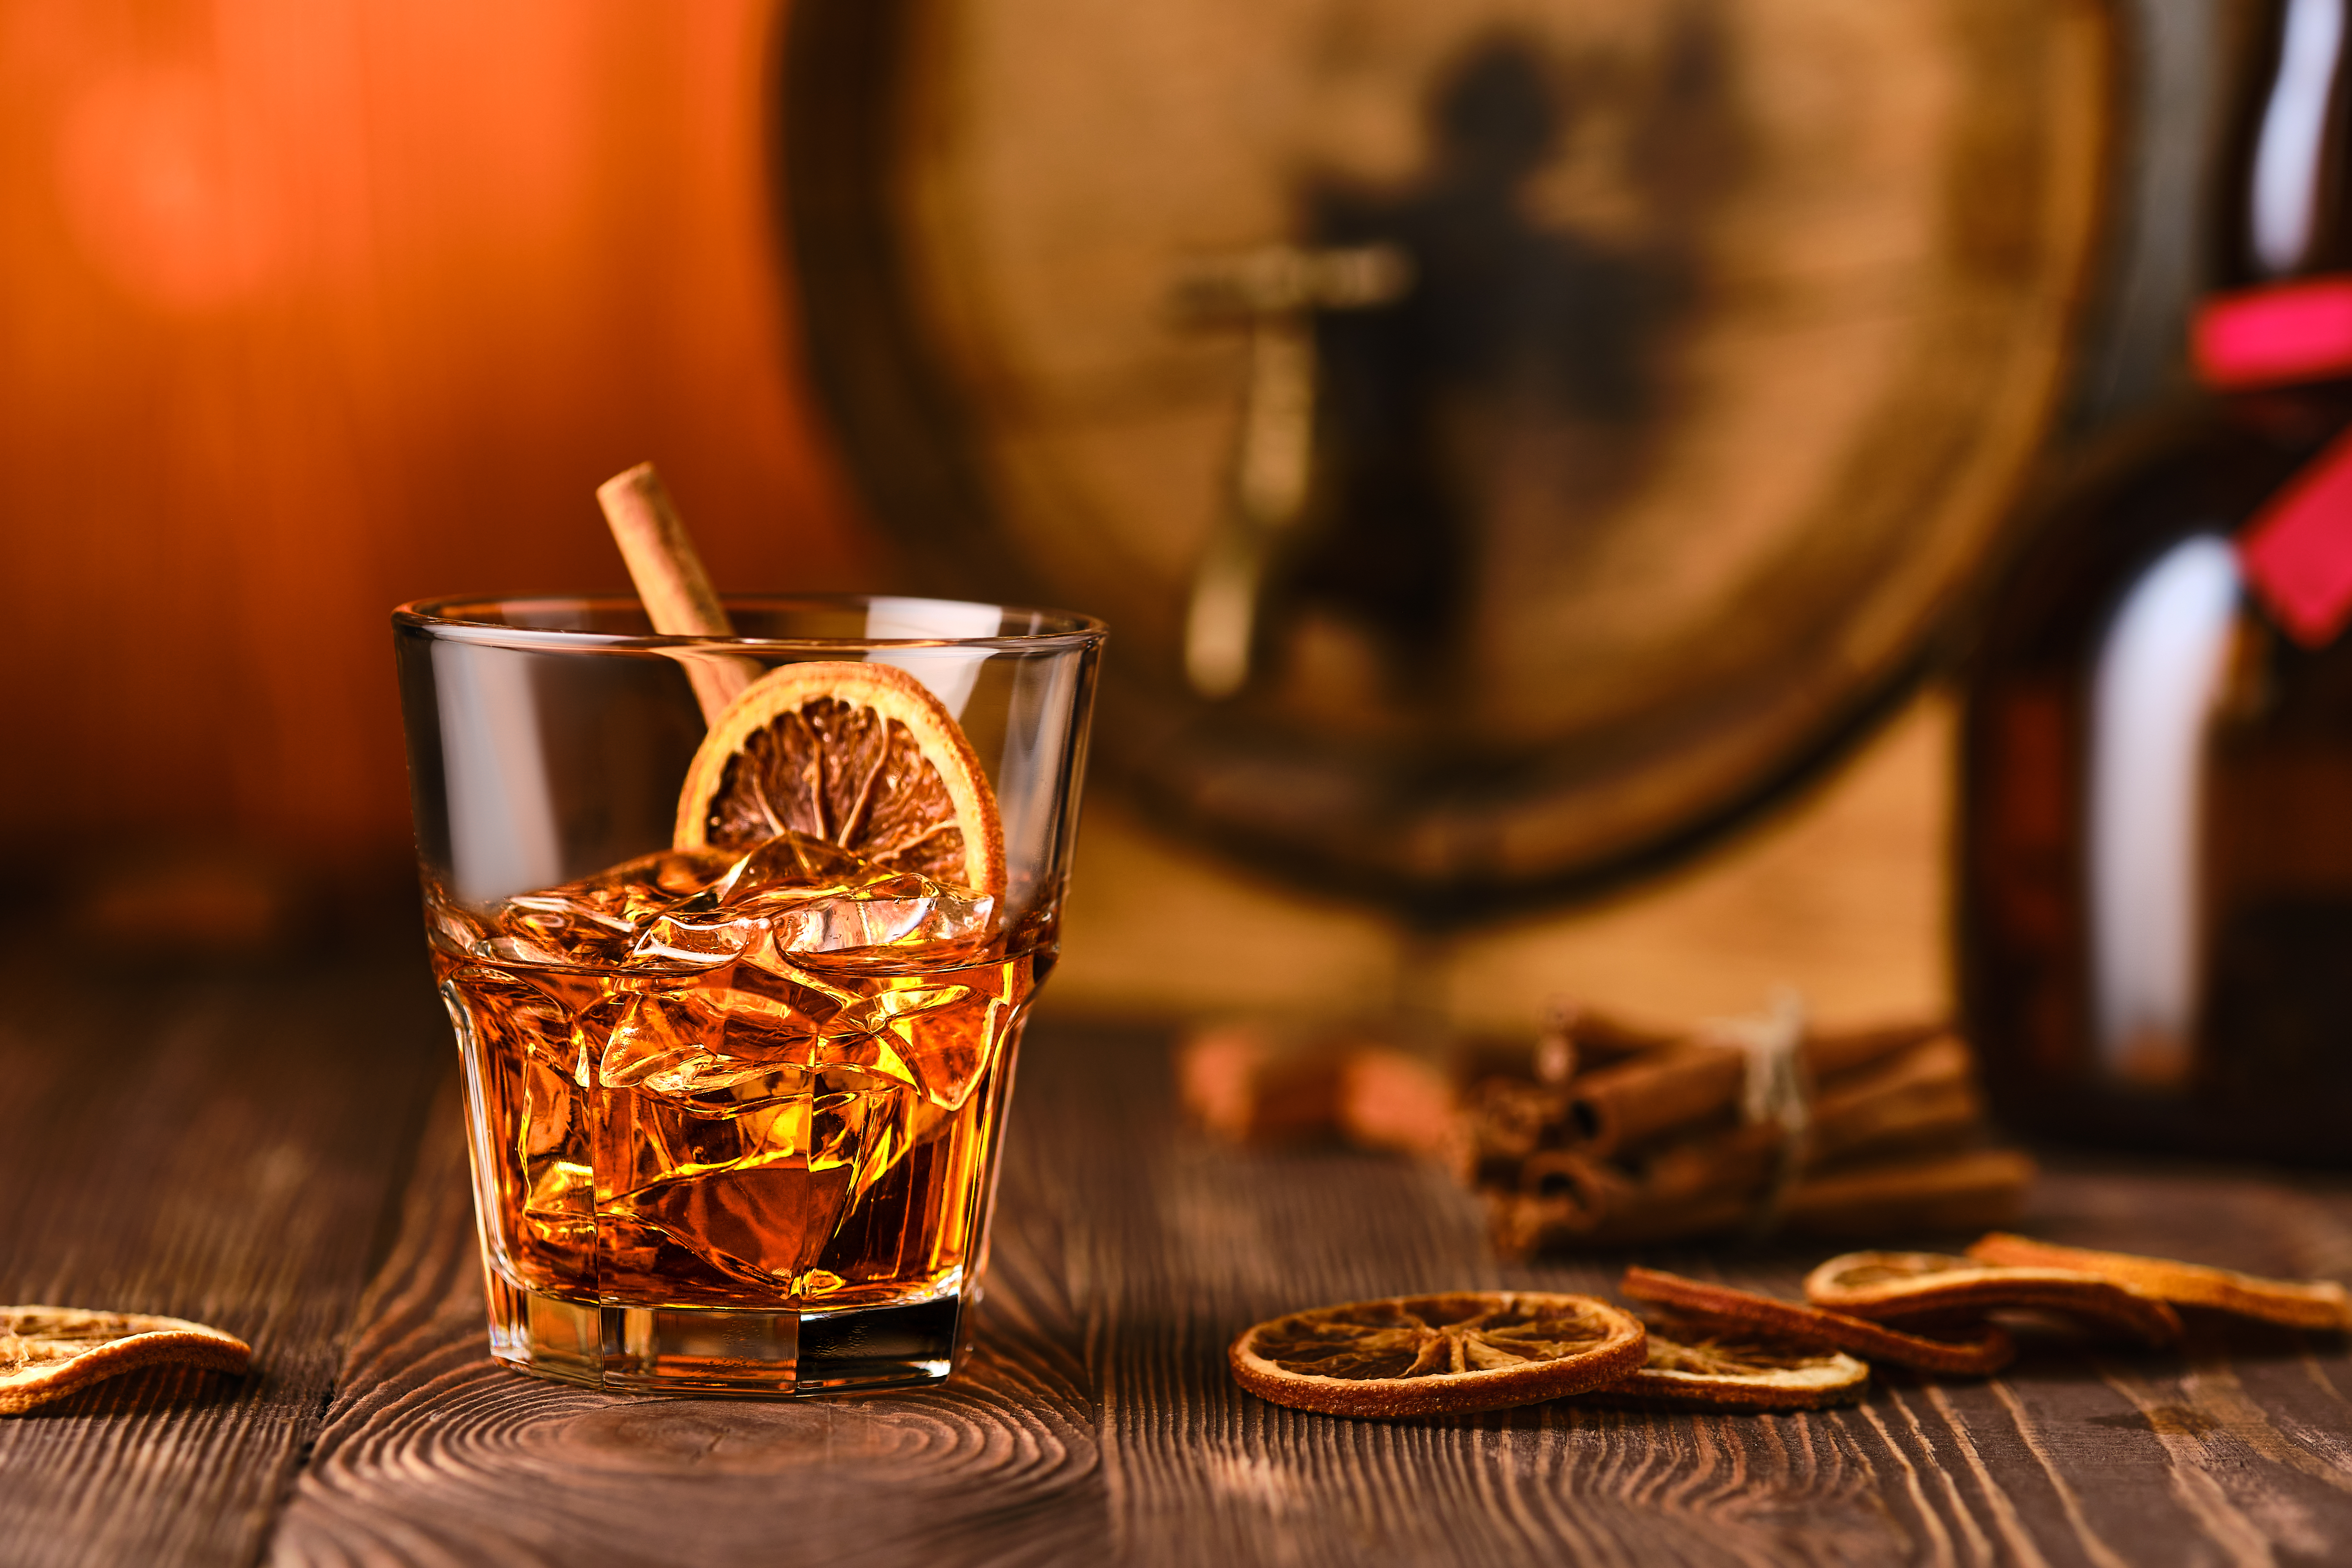 Glass of cocktail with whisky and orange liquor with barrel on background.